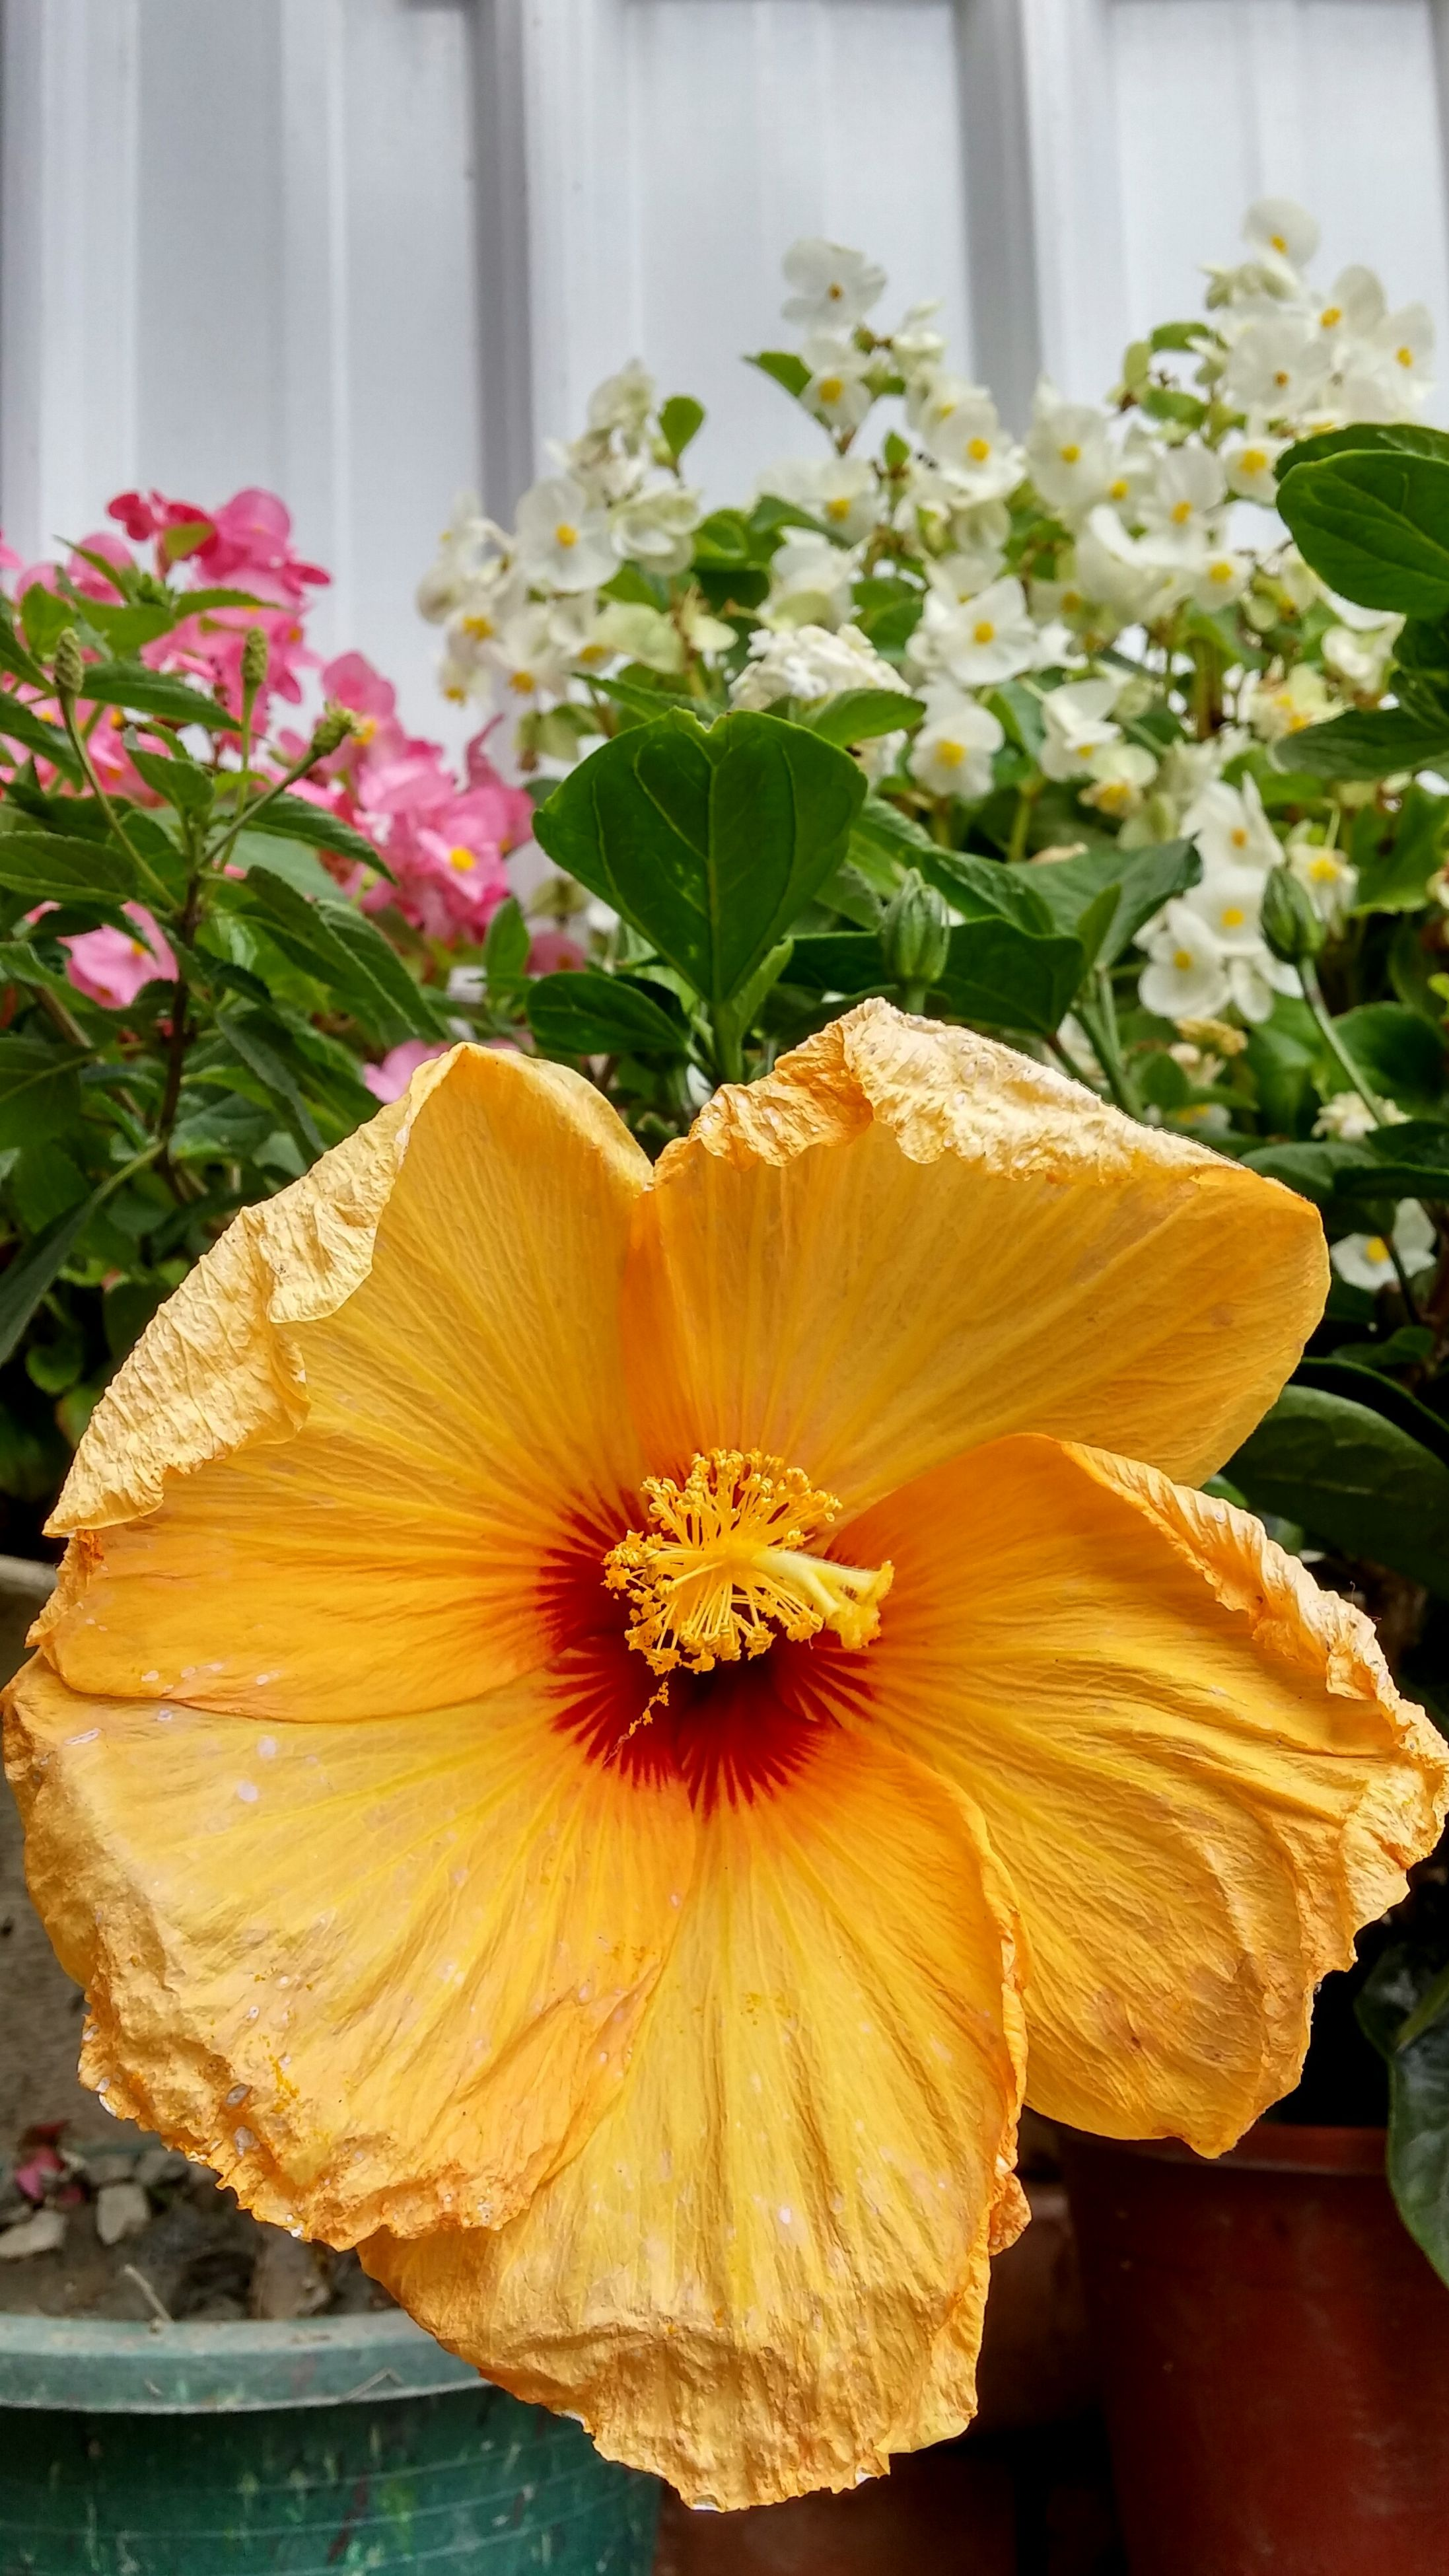 flower, freshness, petal, fragility, flower head, close-up, beauty in nature, leaf, indoors, plant, growth, nature, orange color, table, focus on foreground, blooming, yellow, no people, day, high angle view